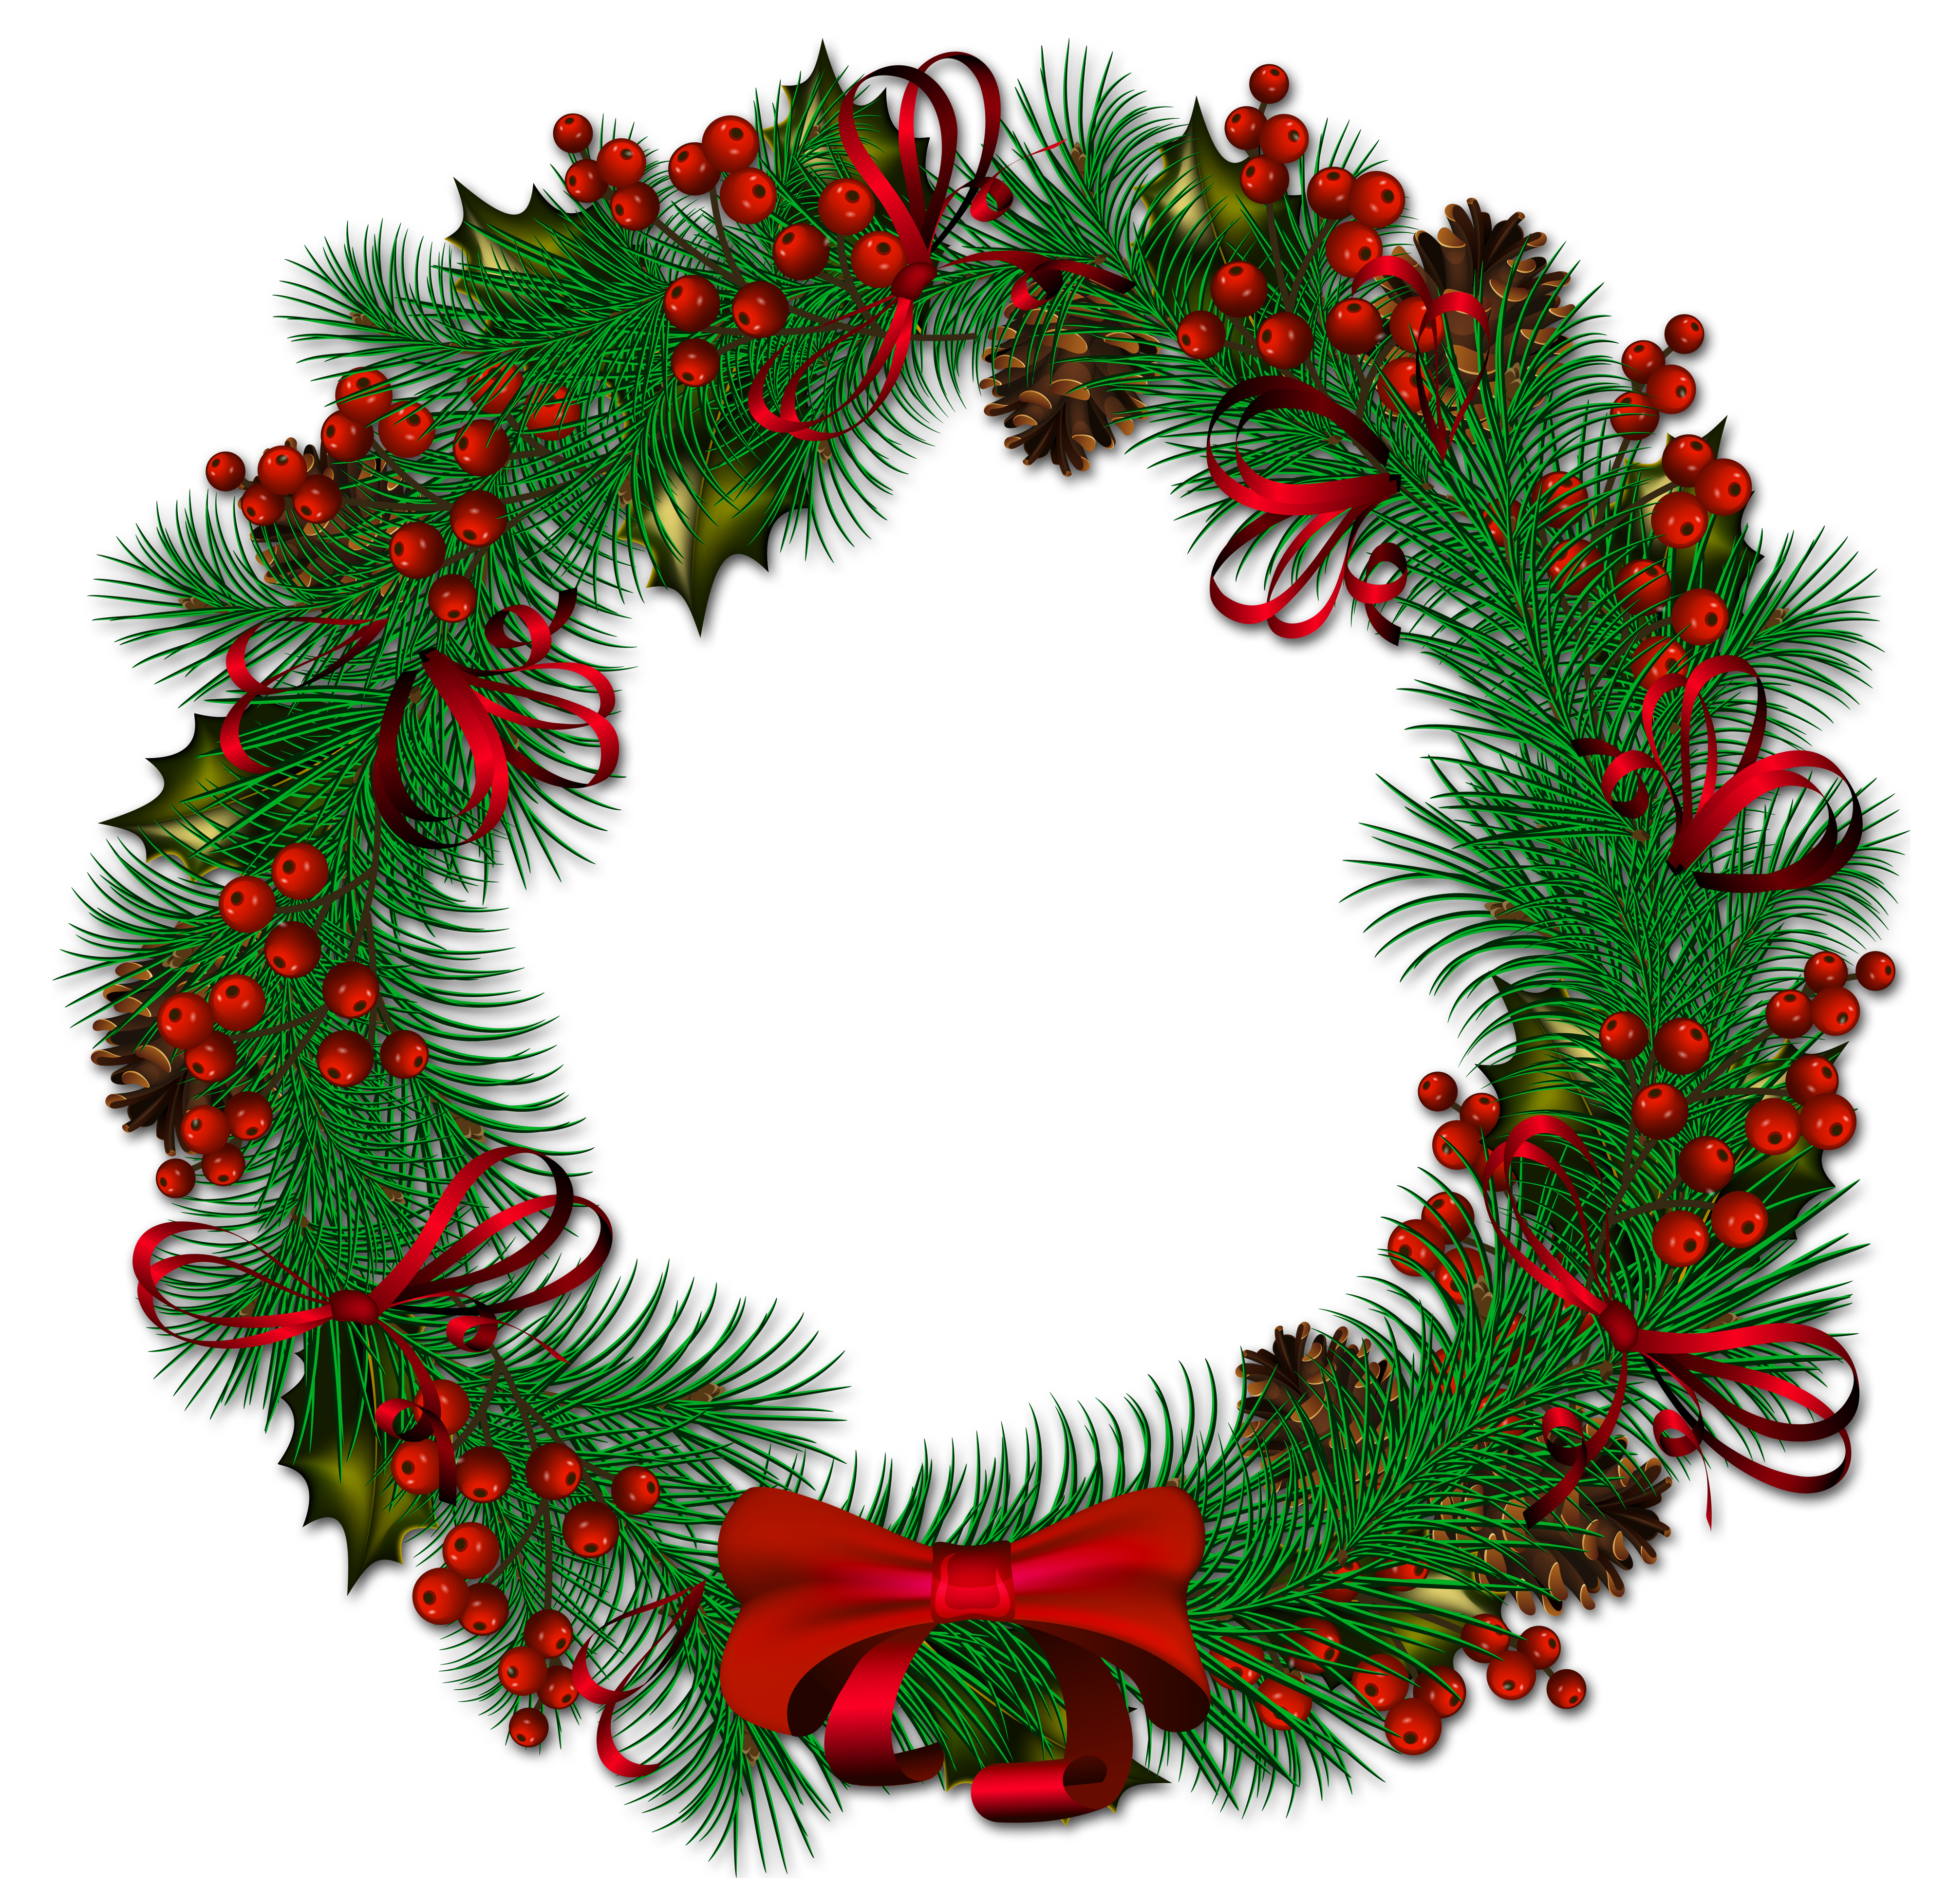 Holly clipart ribbon. Transparent christmas pinecone wreath